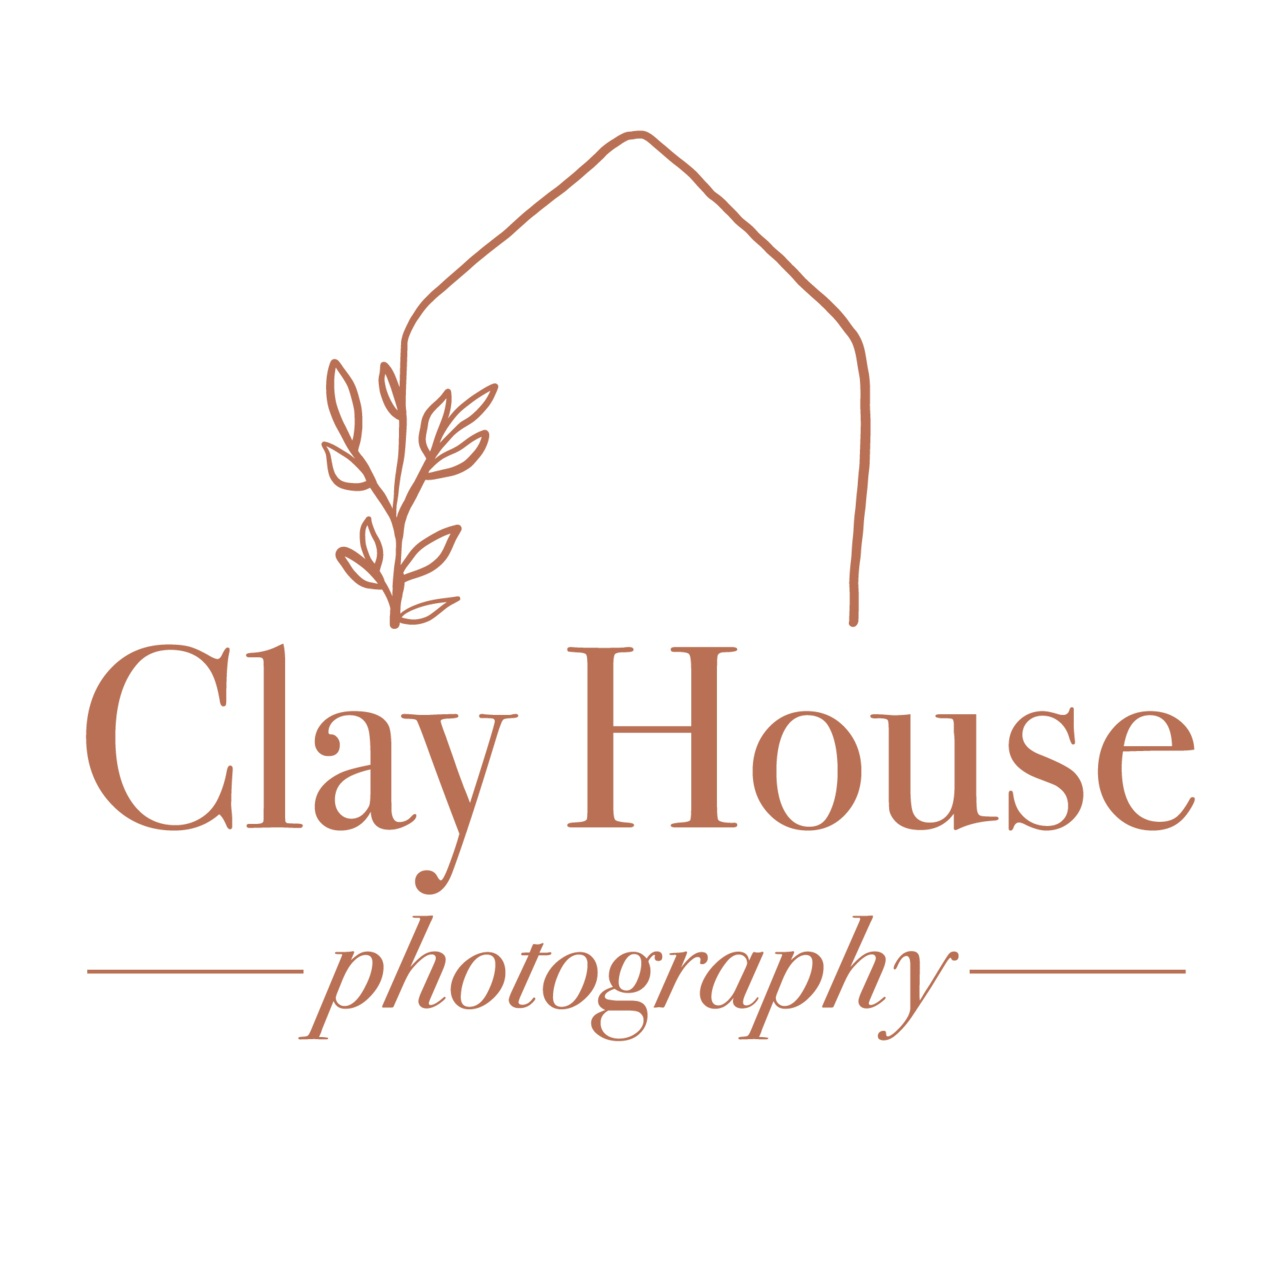 CLAY HOUSE PHOTOGRAPHY